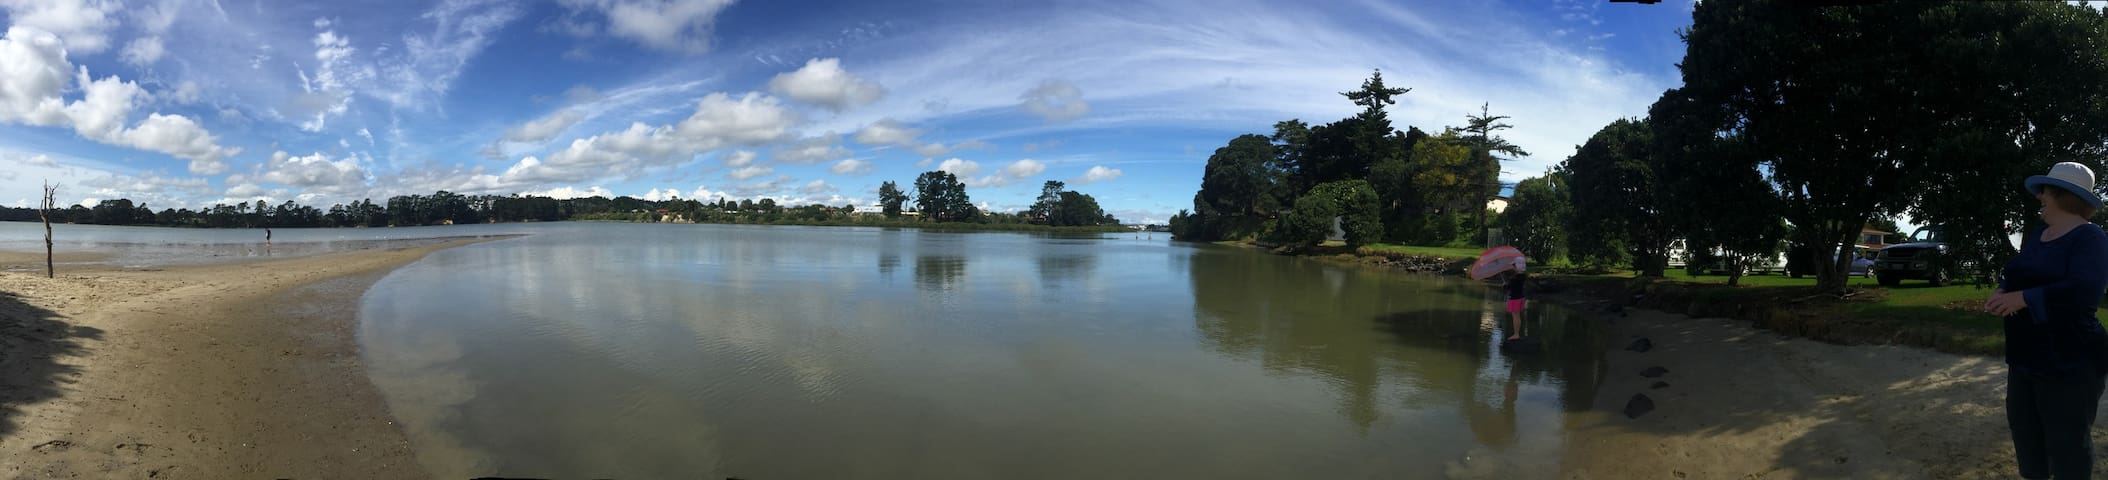 Peace and tranquility in rural South Auckland - Waiuku